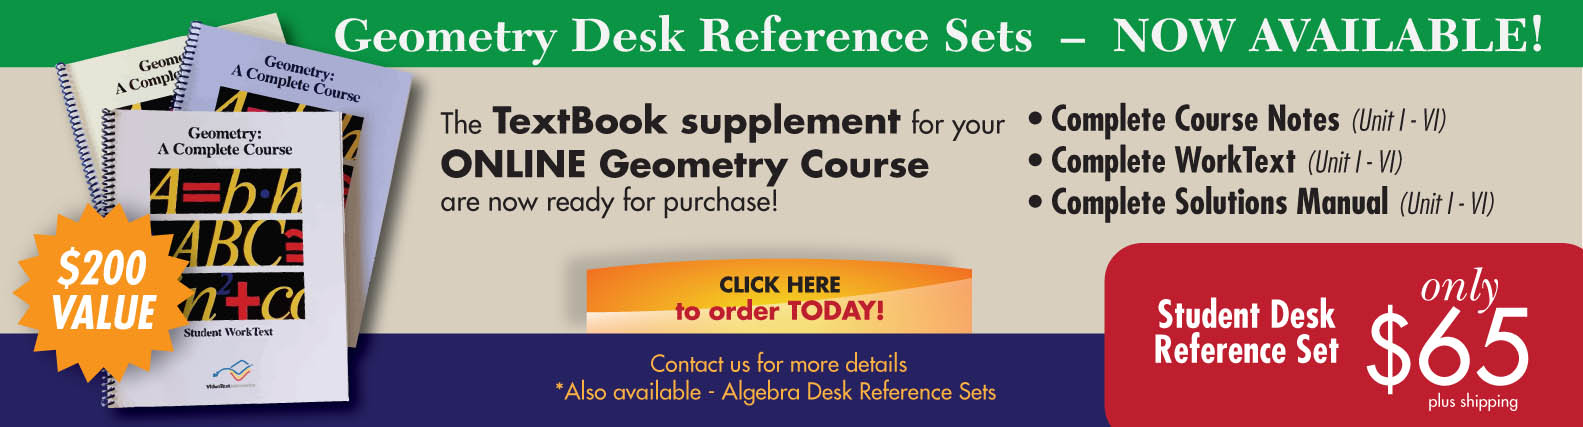 Geometry desk reference click hereg new geometry desk reference sets now available fandeluxe Choice Image